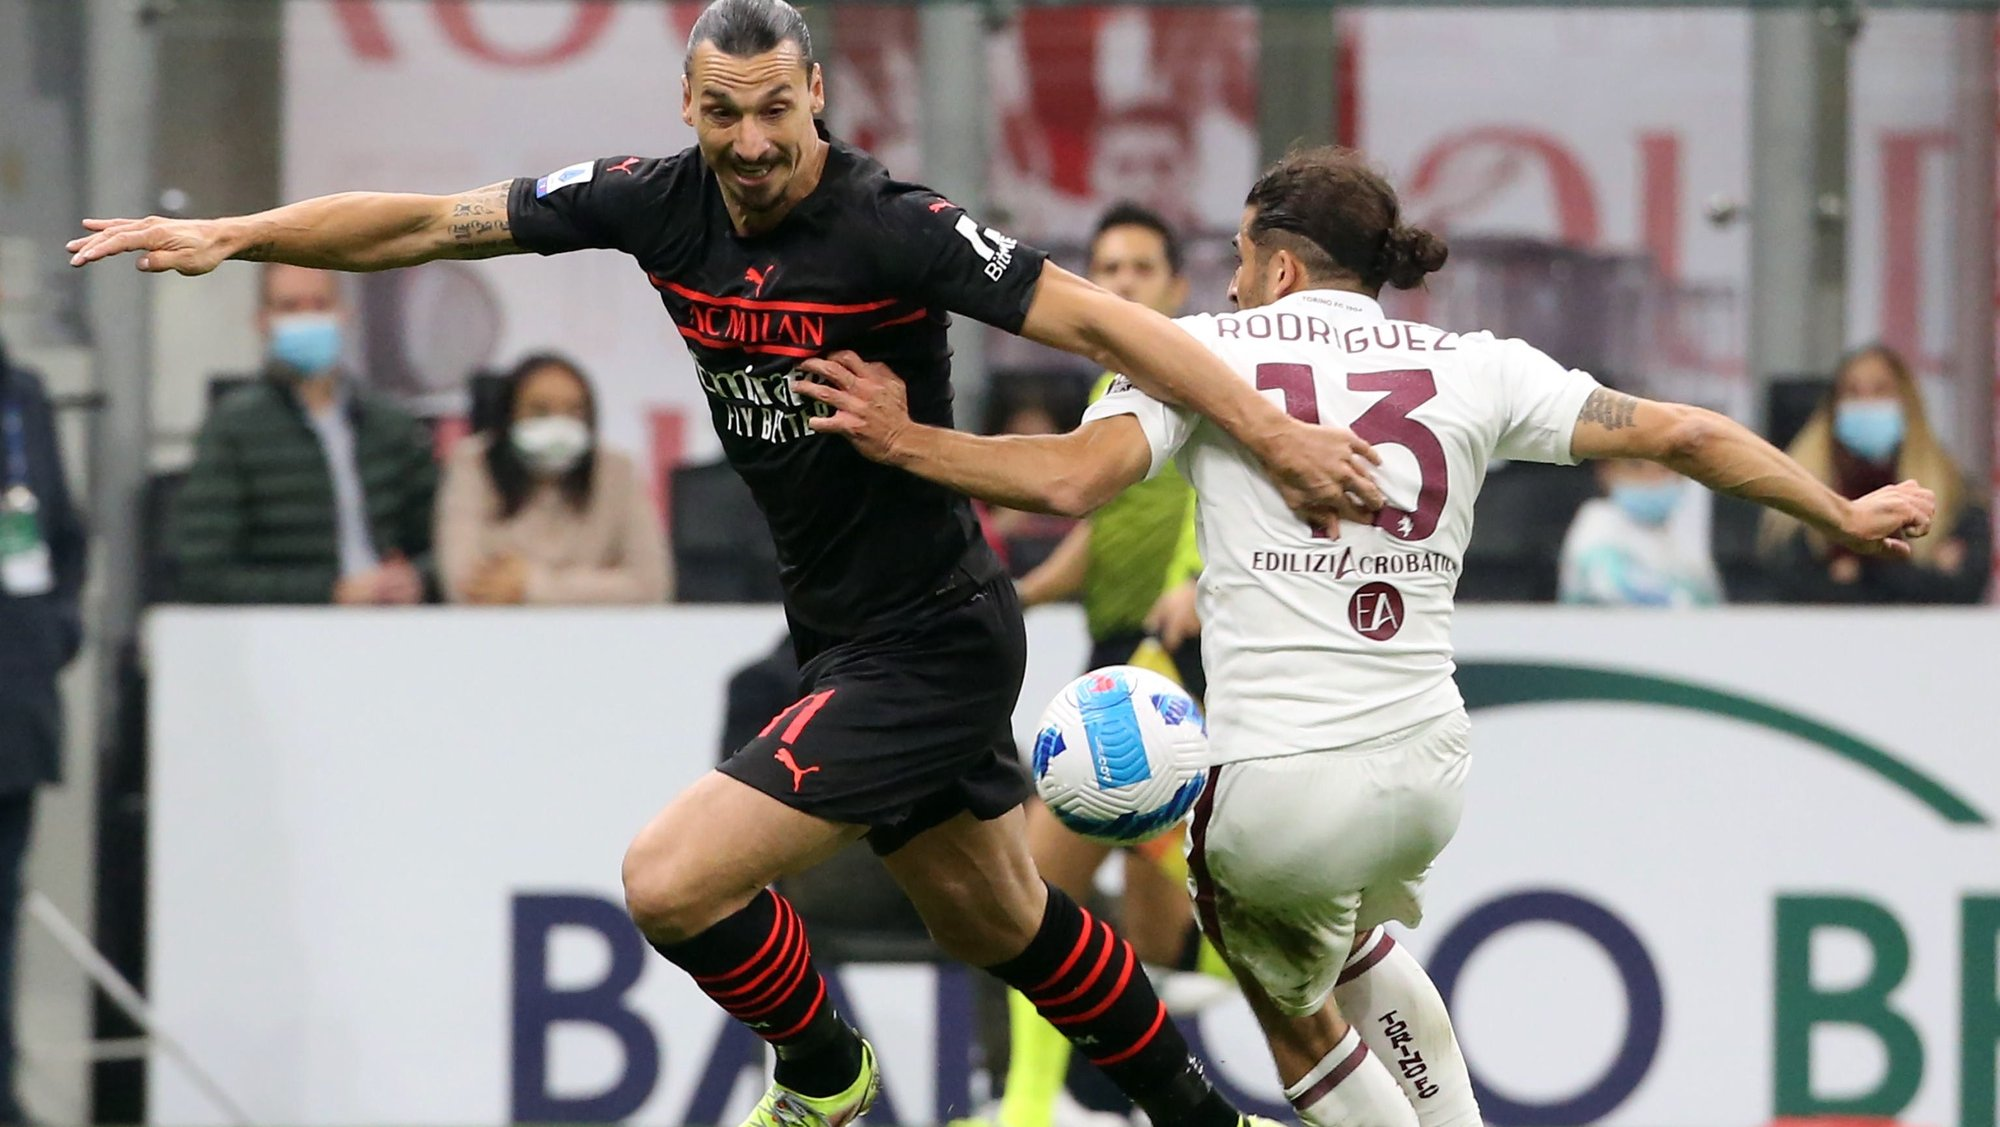 epa09547874 AC Milan's Zlatan Ibrahimovic (L) challenges for the ball Torino's Ricardo Rodriguez during the Italian serie A soccer match between AC Milan and Torino FC at Giuseppe Meazza stadium in Milan, Italy, 26 October 2021.  EPA/MATTEO BAZZI